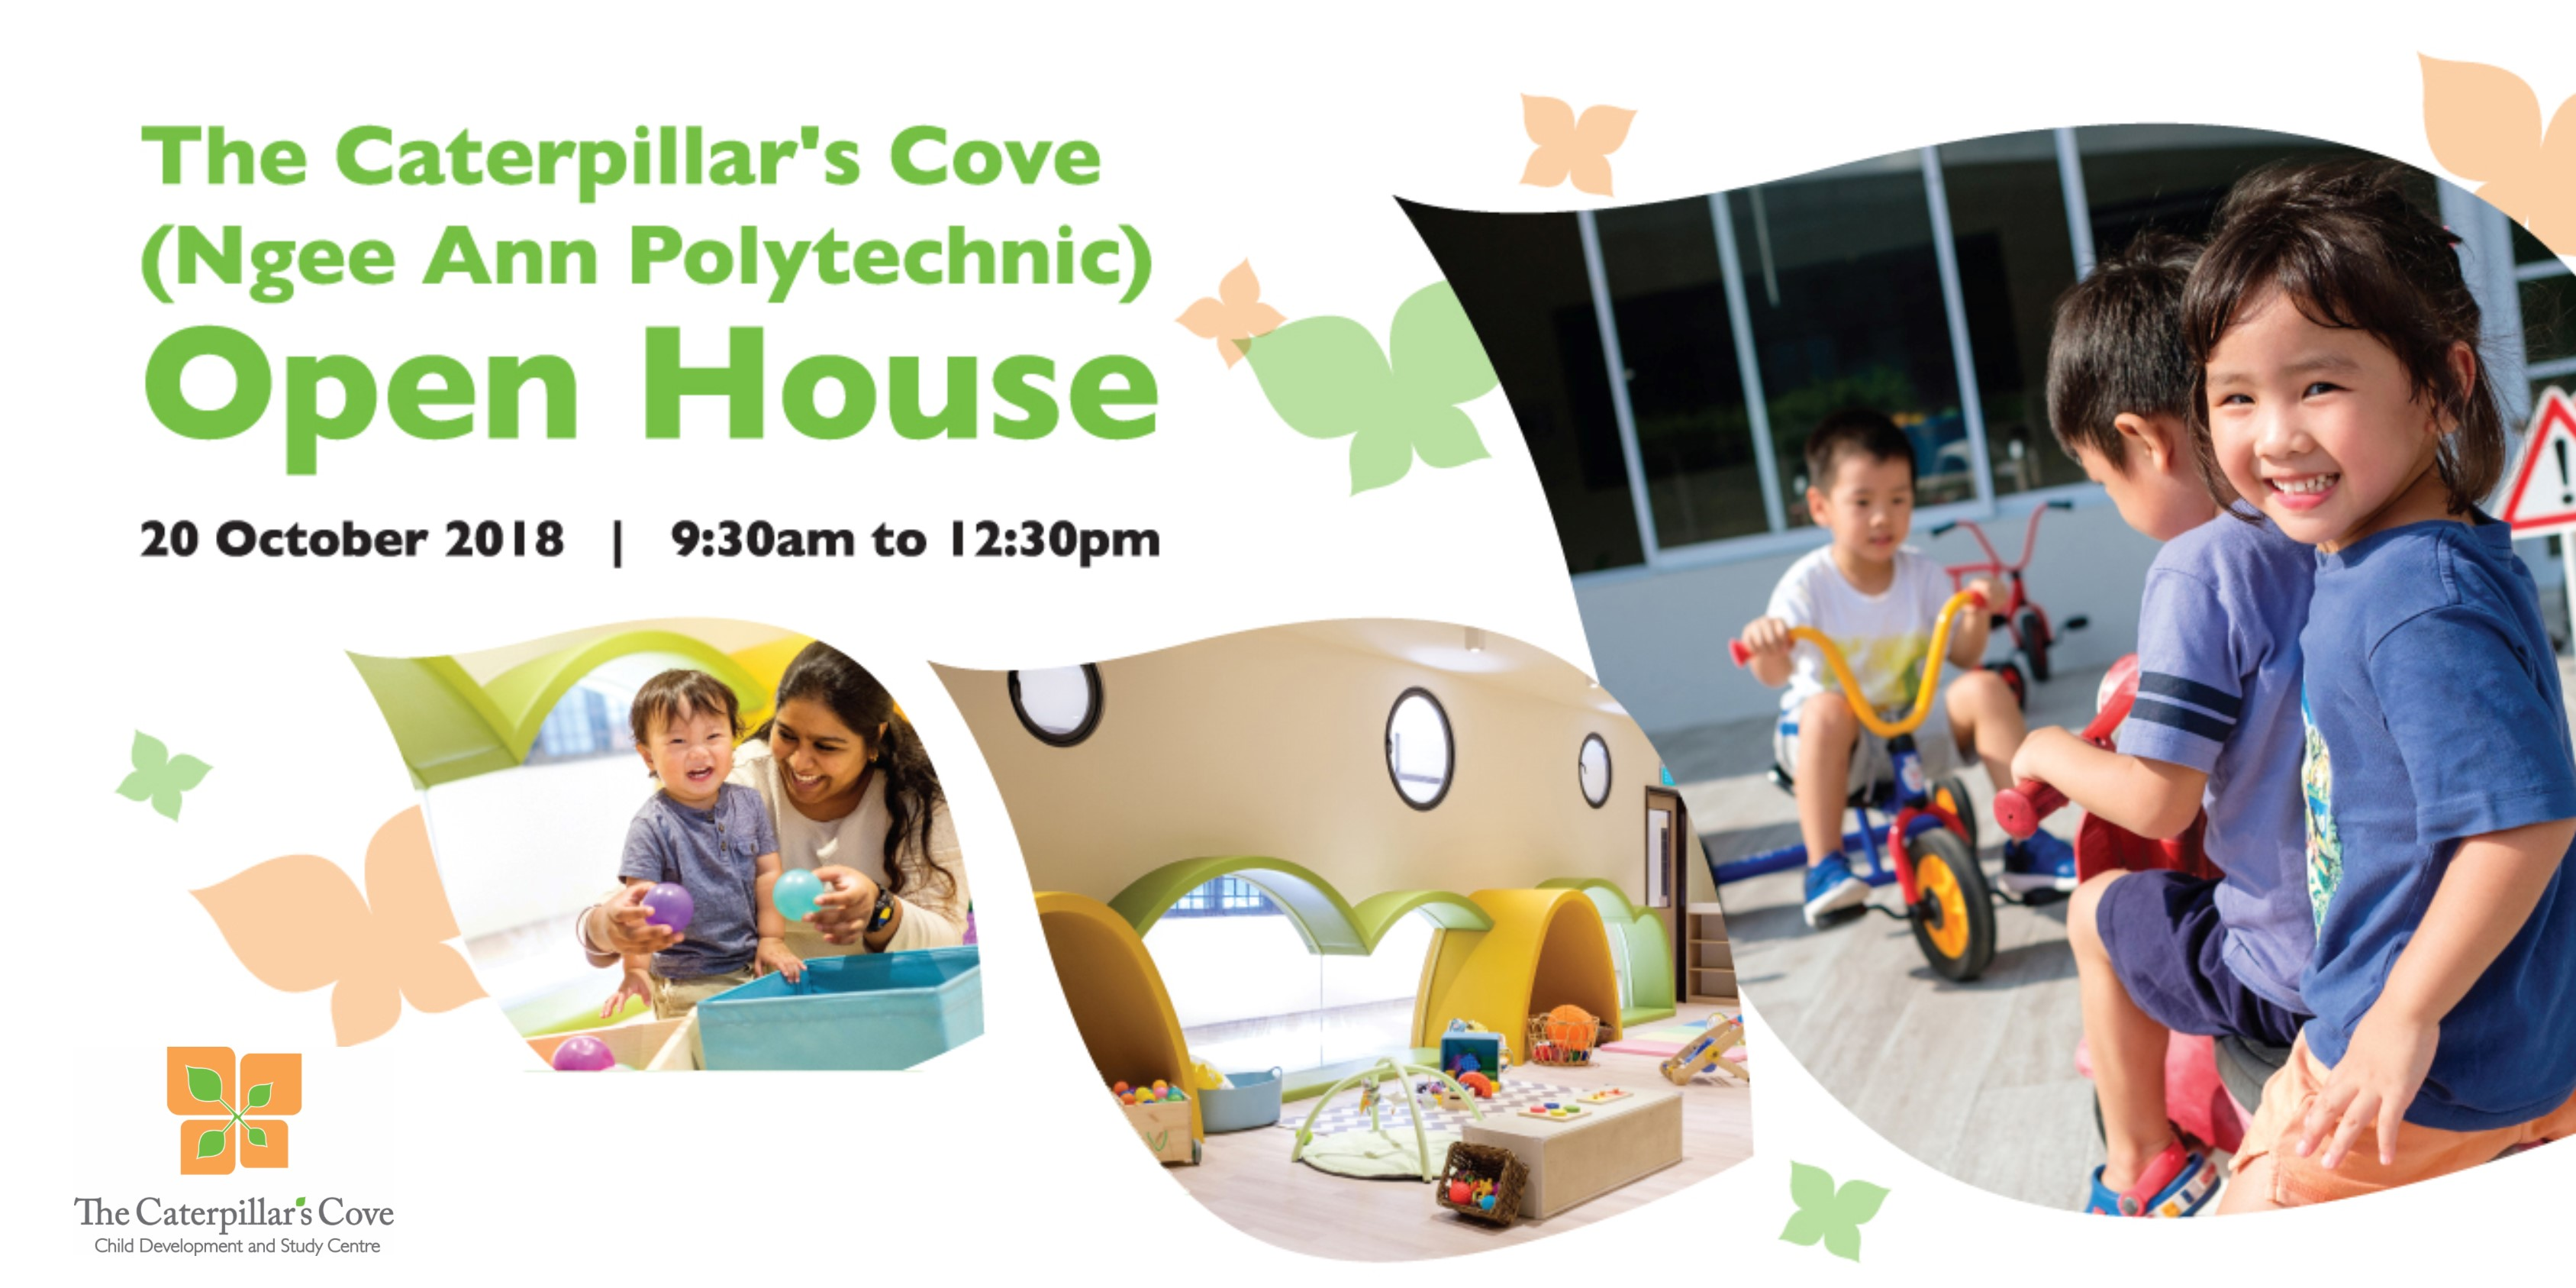 The Caterpillar's Cove (Ngee Ann Poly) Open House